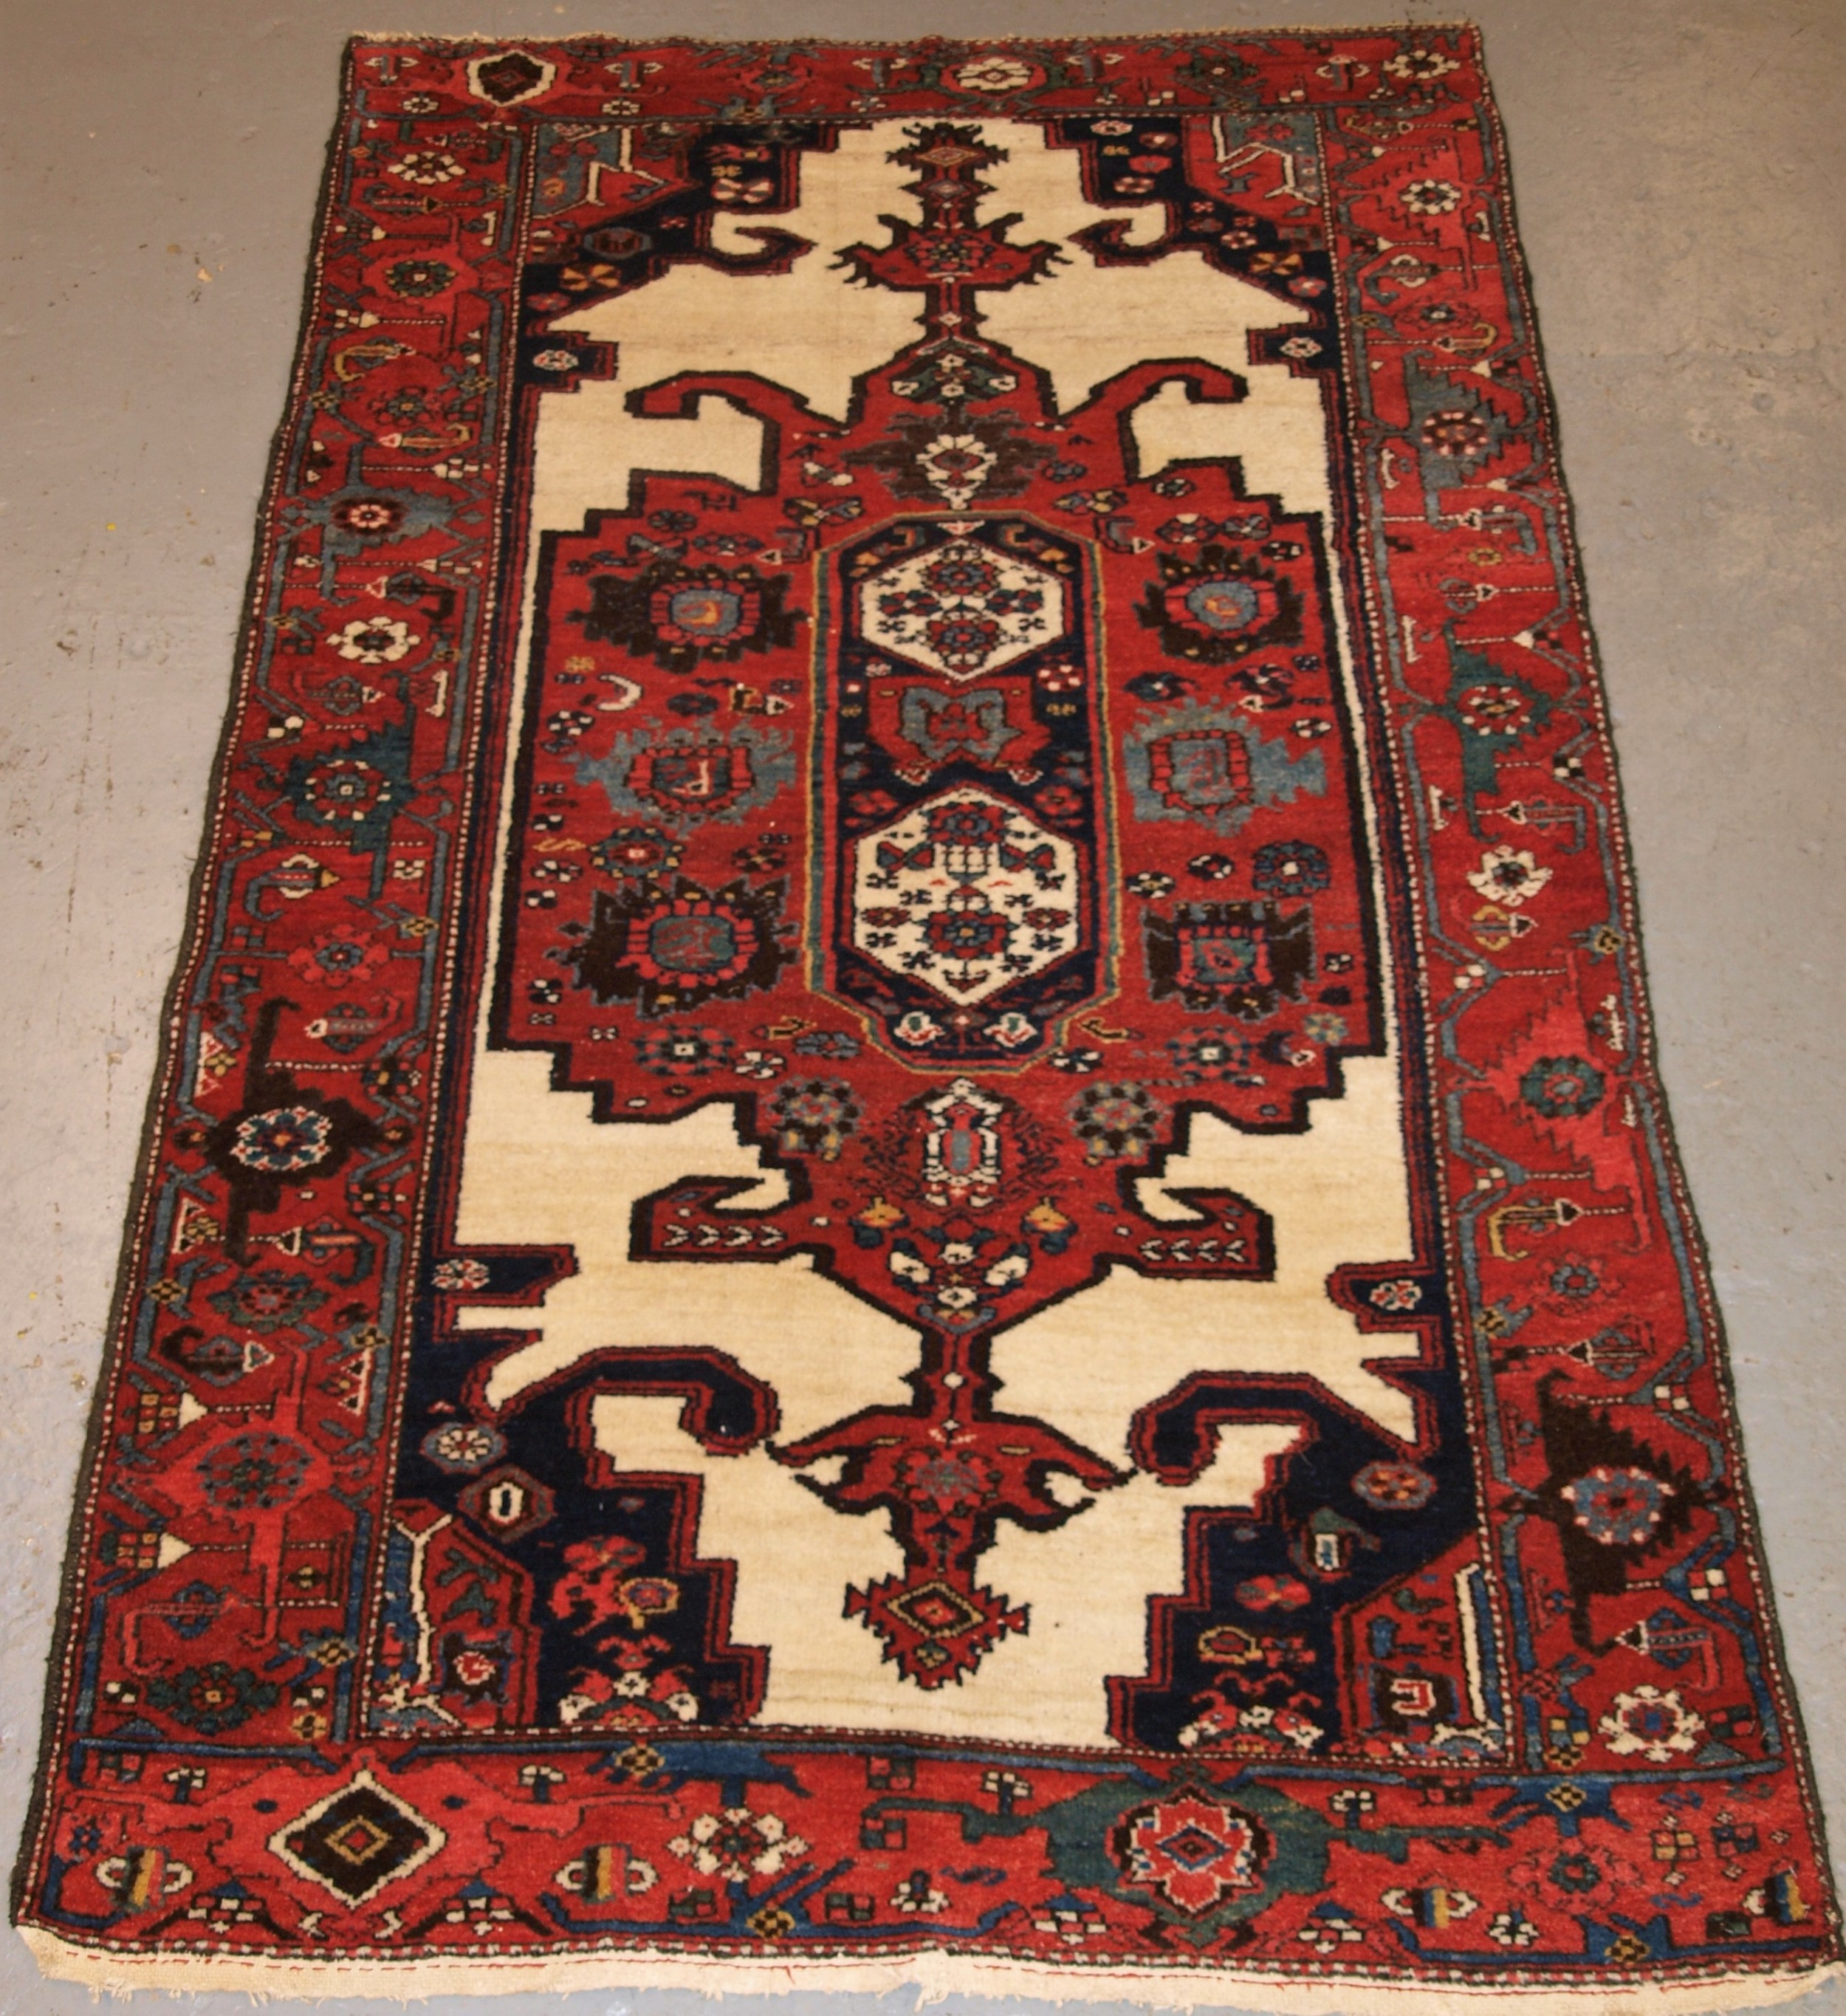 old north west persian kurdish rug good design hard wearing rug circa 1920